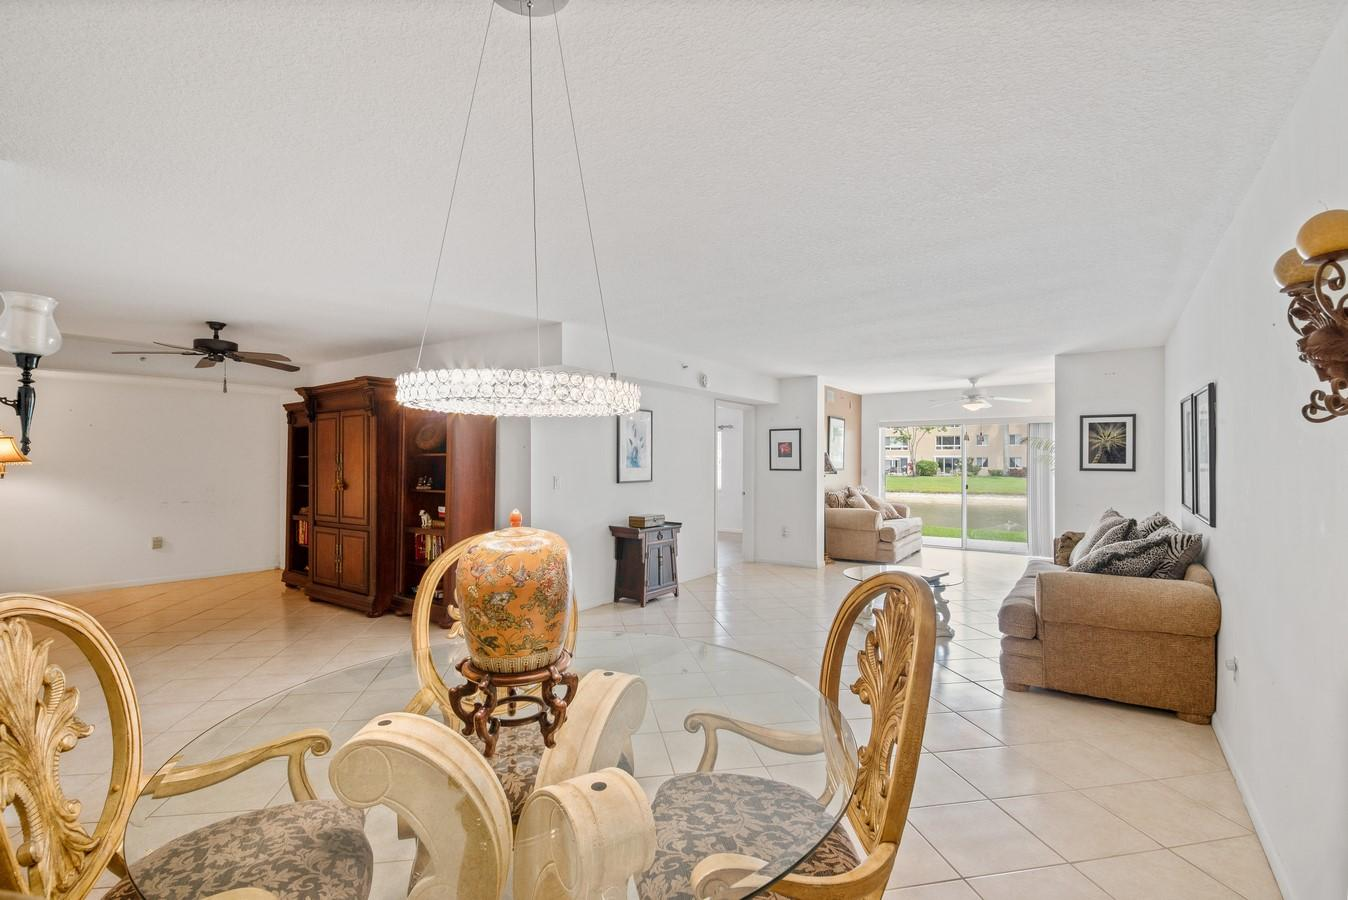 Home for sale in Coral Cove / Coral Lakes Boynton Beach Florida